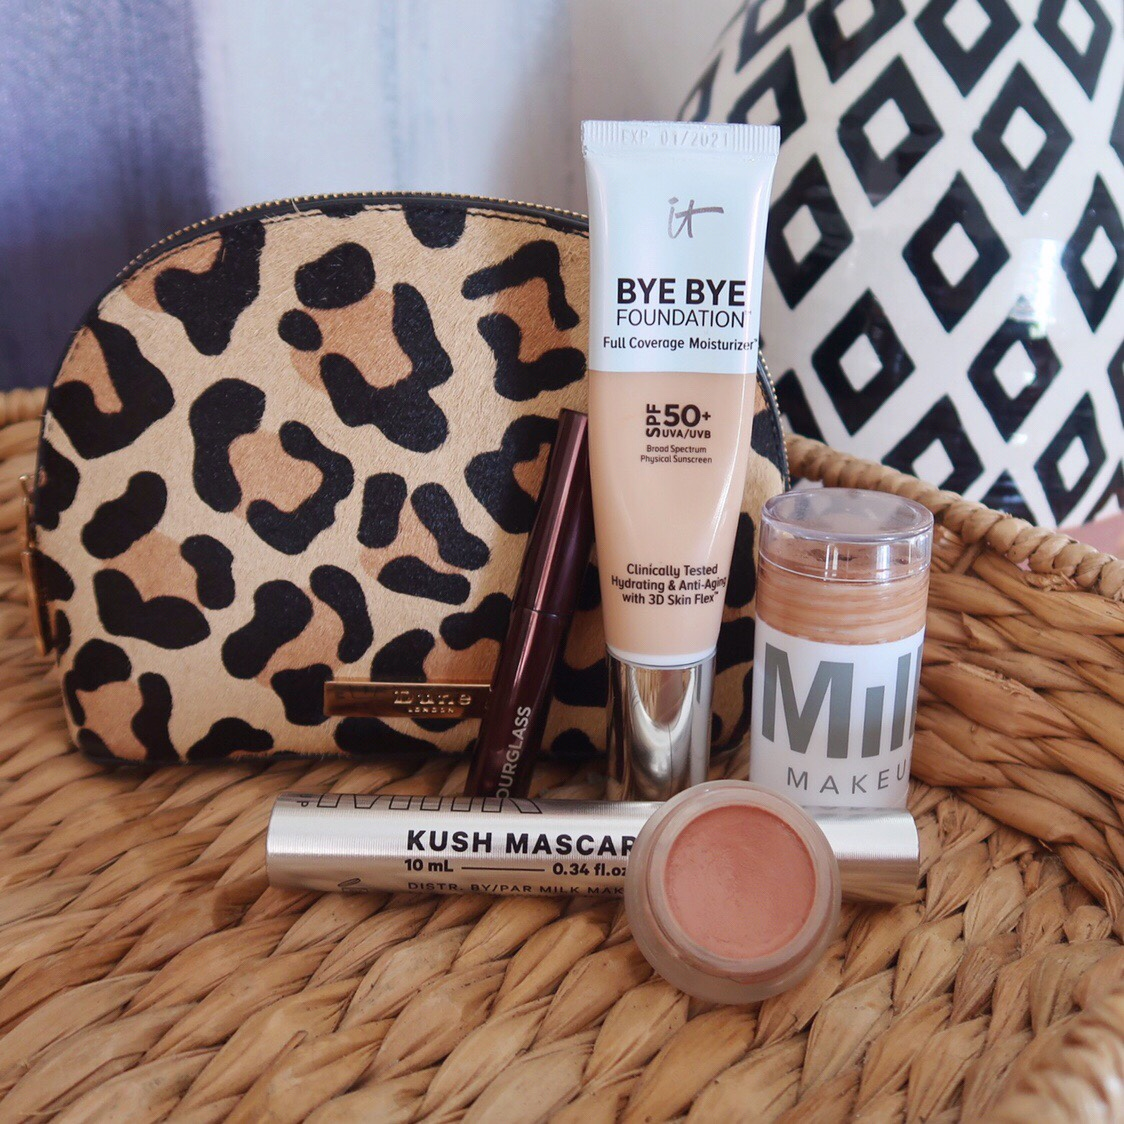 5-product makeup routine displayed in front of a leopard makeup bag, featuring It Cosmetics Bye Bye Foundation, MILK Kush Mascara, MILK Matte Cream Bronzer, rms beauty Lip2Cheek in 'spell' and Hourlgass brow gel.